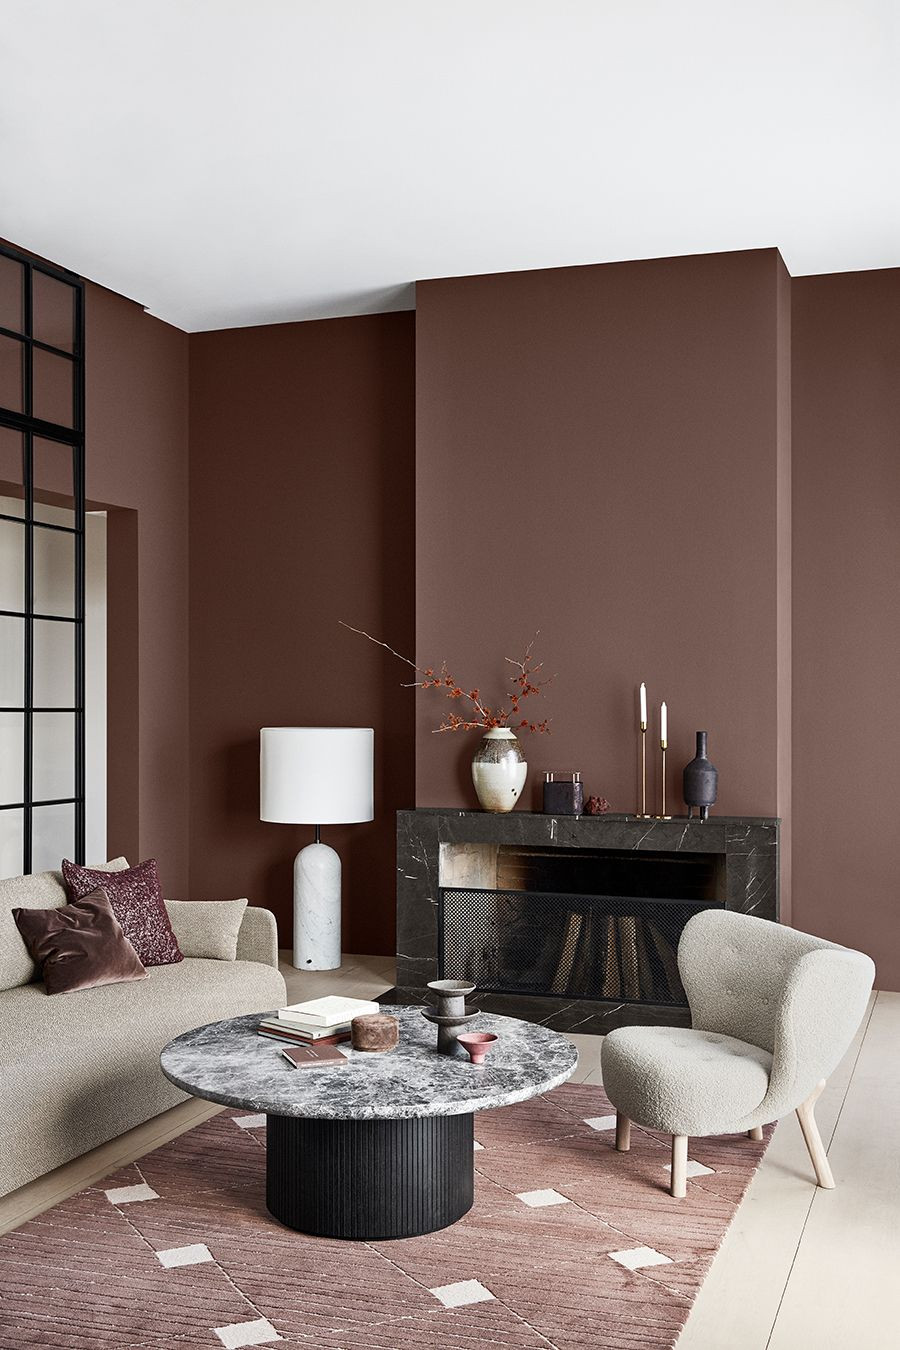 Living Room Color Schemes 2020  THE SCANDINAVIAN INTERIOR COLOUR TRENDS OF 2020 FROM JOTUN